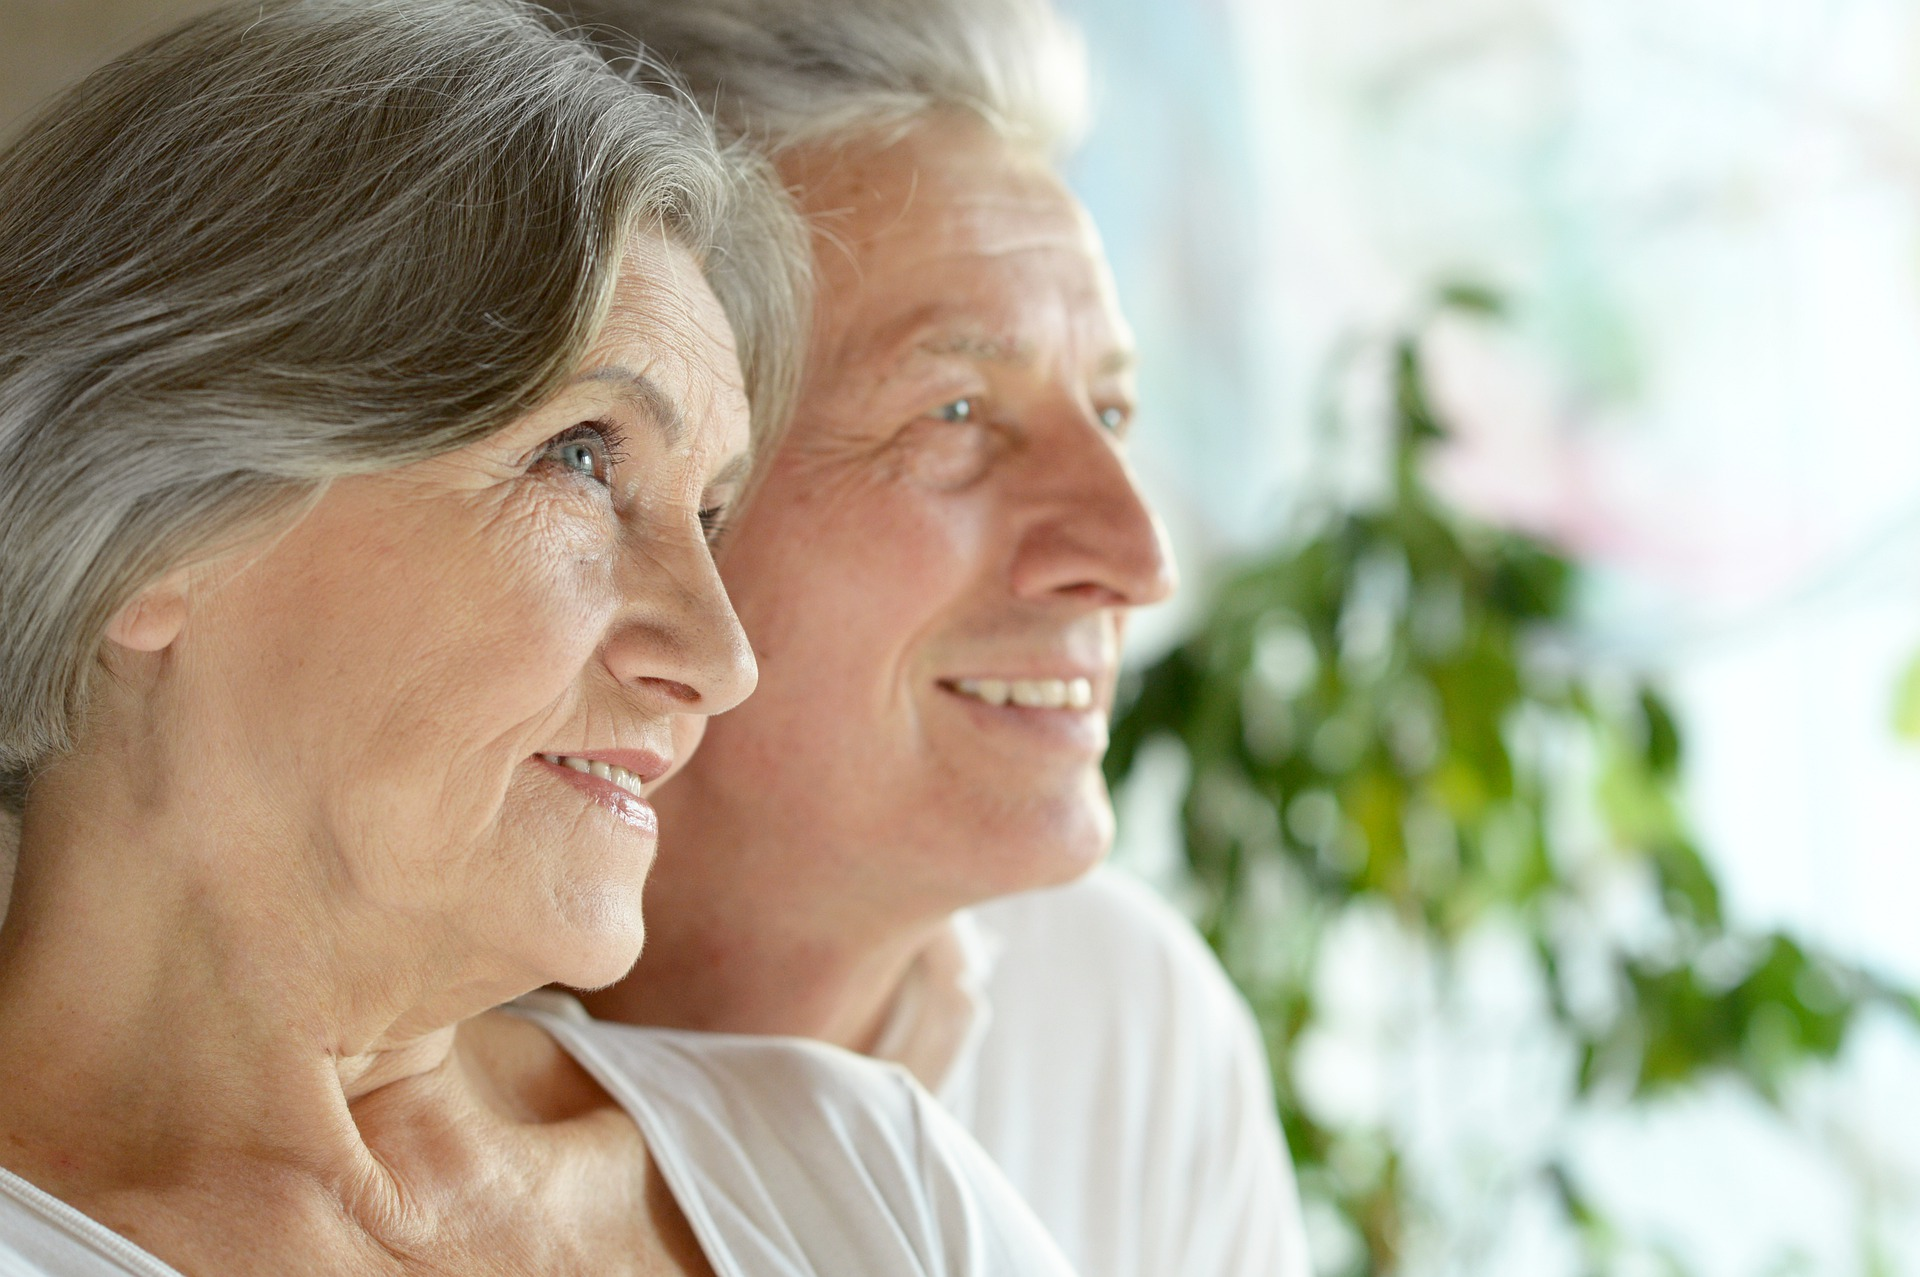 Short Story about Grandparents with Moral Lesson